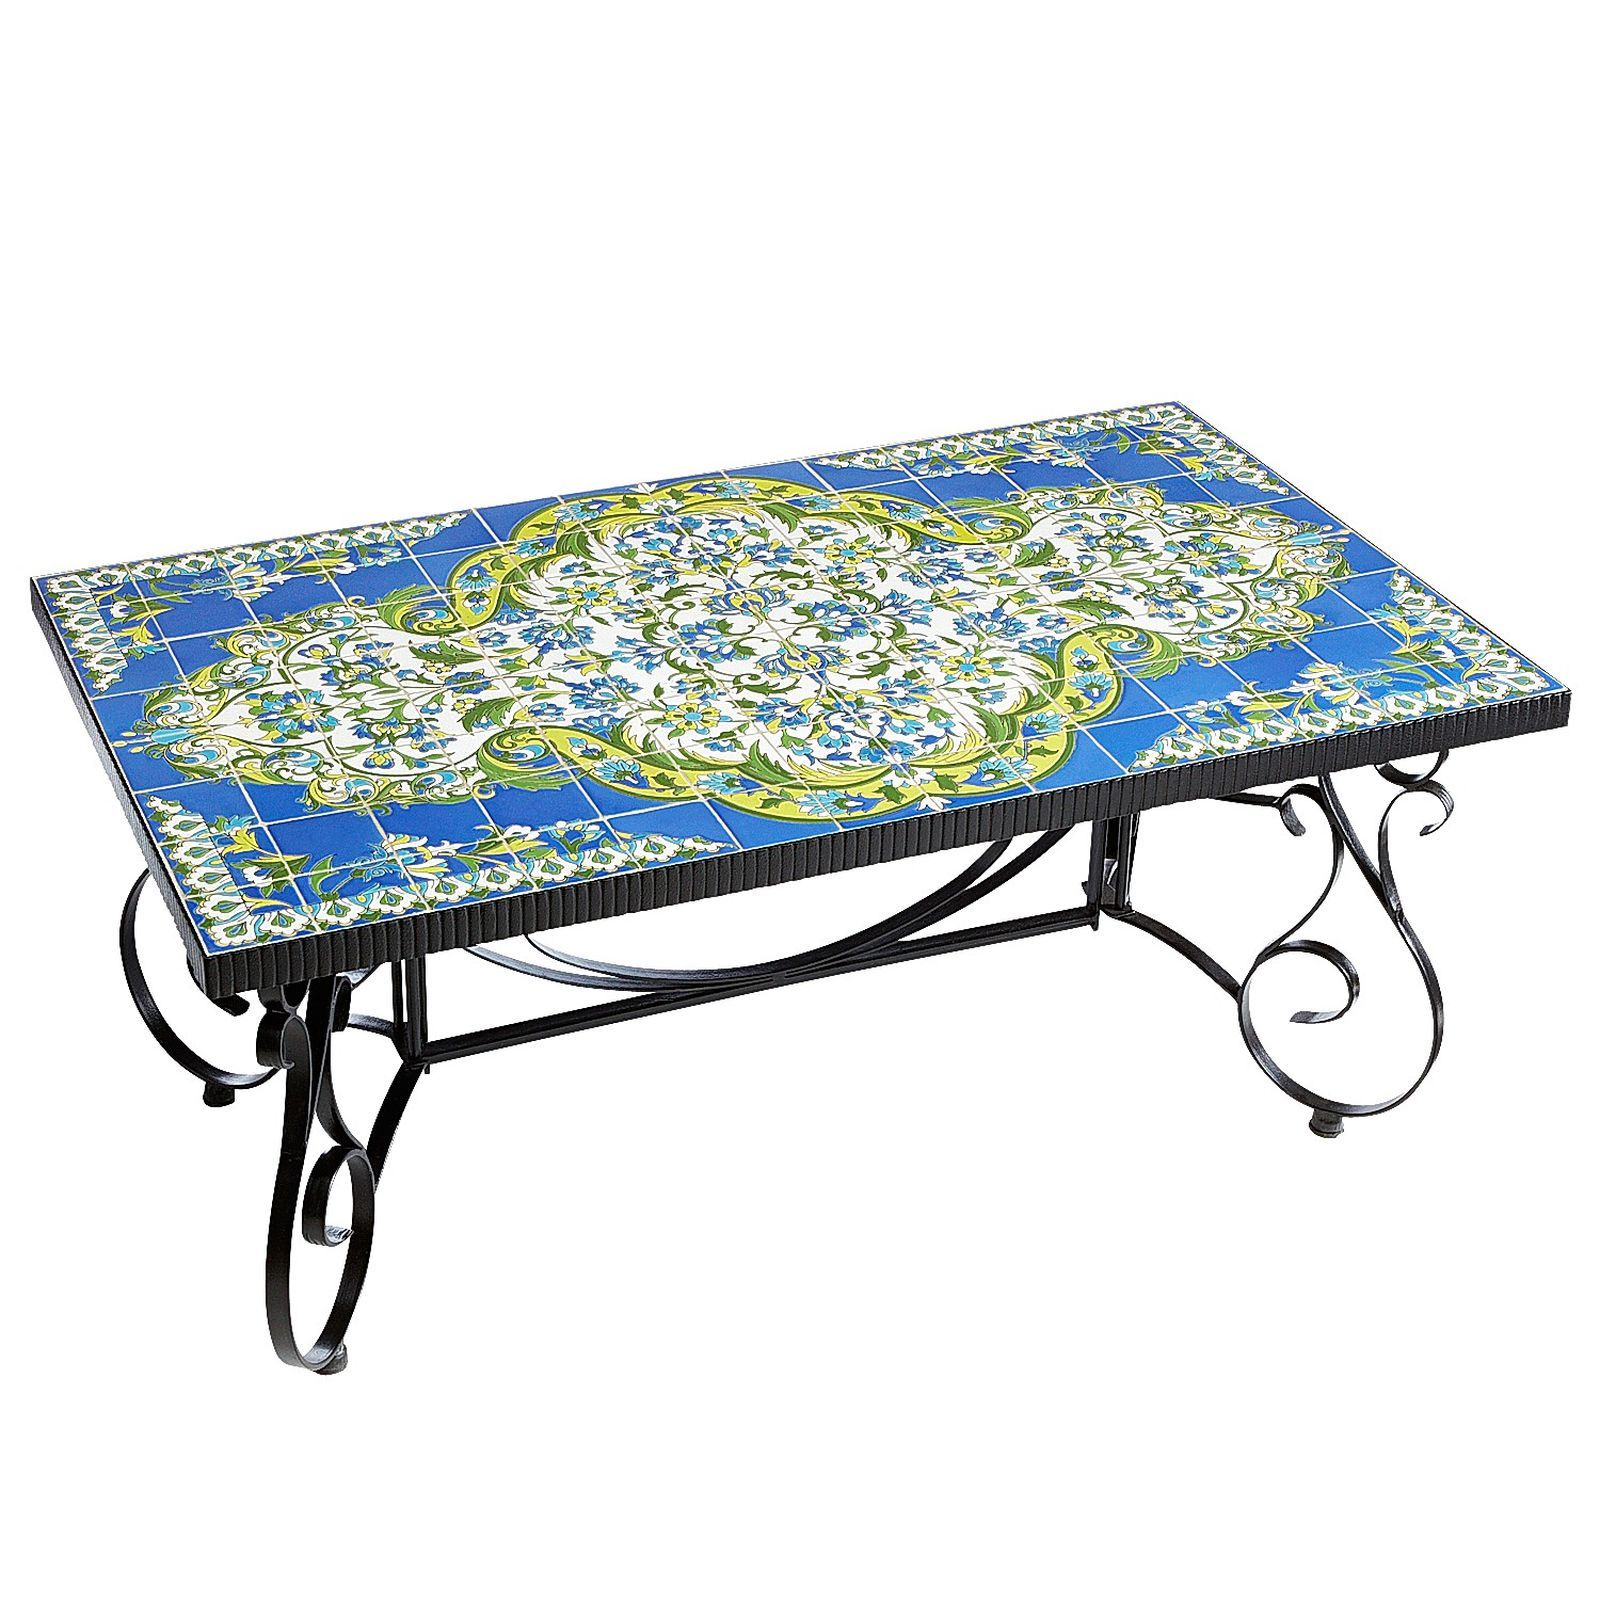 Javan Mosaic Coffee Table Pier 1 Imports With Images Coffee